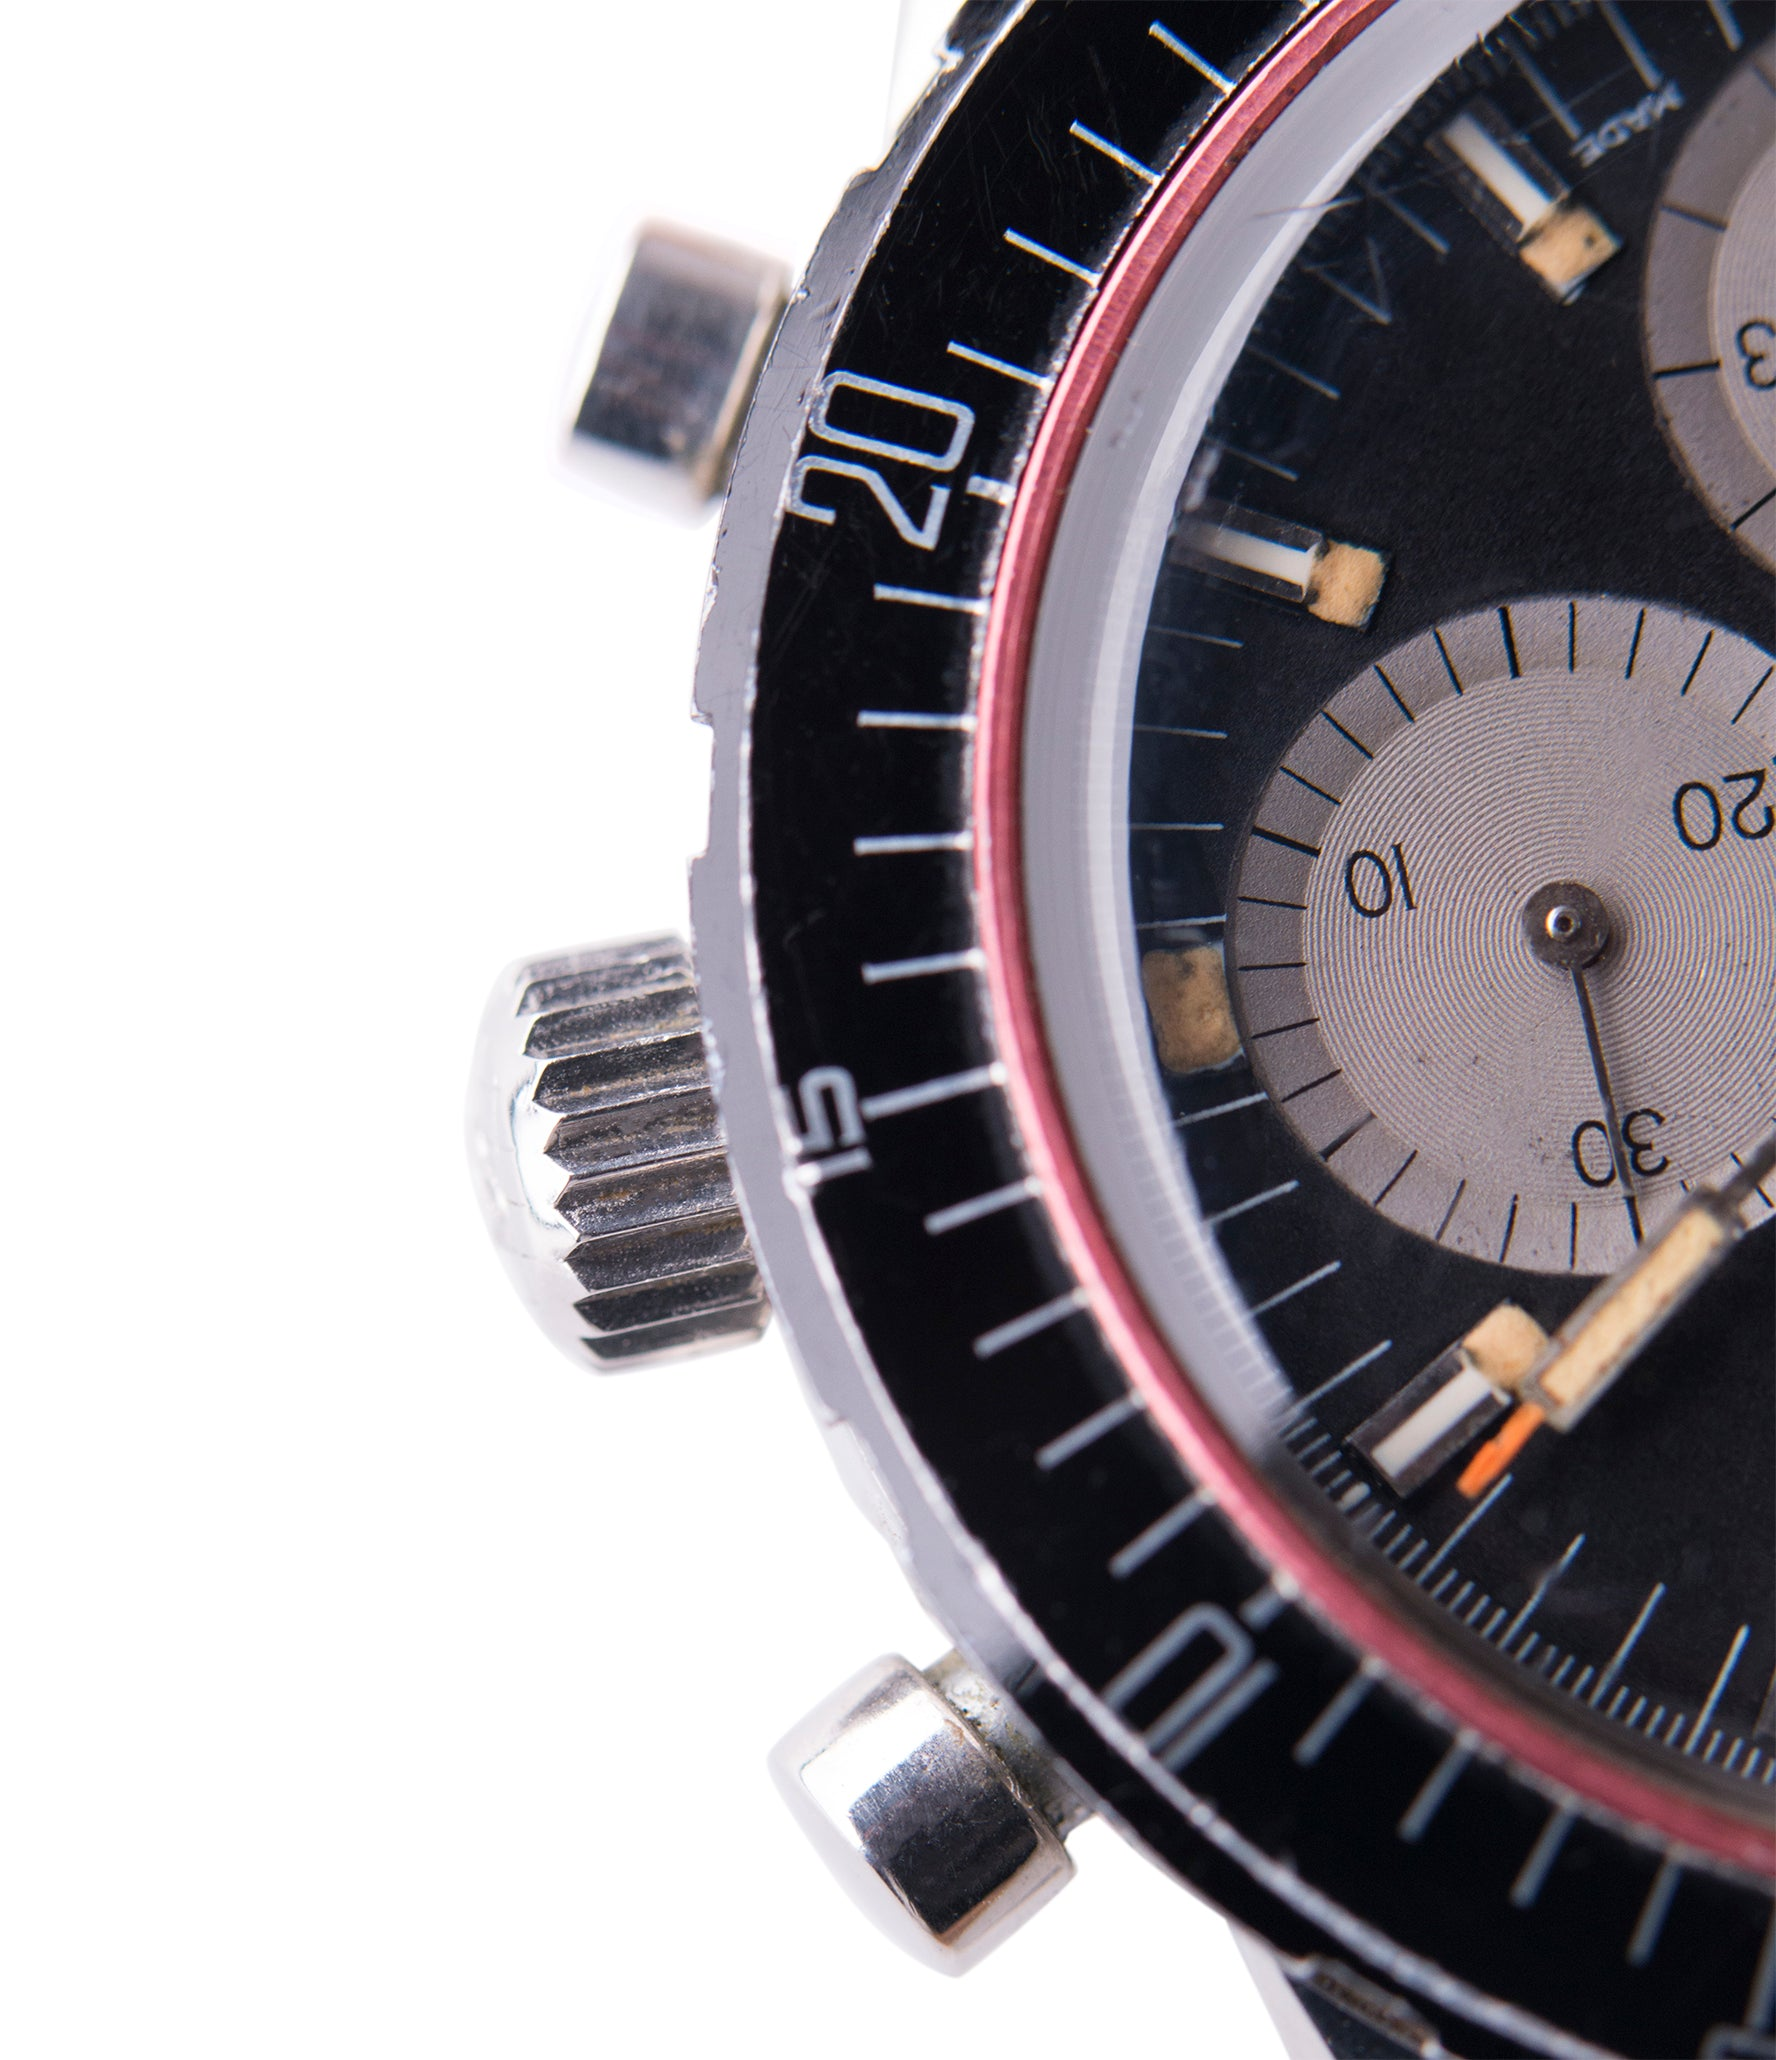 chronograph Enicar Aqua Graph 072-02-02 steel watch for sale online at A Collected Man London UK specialist of rare watches